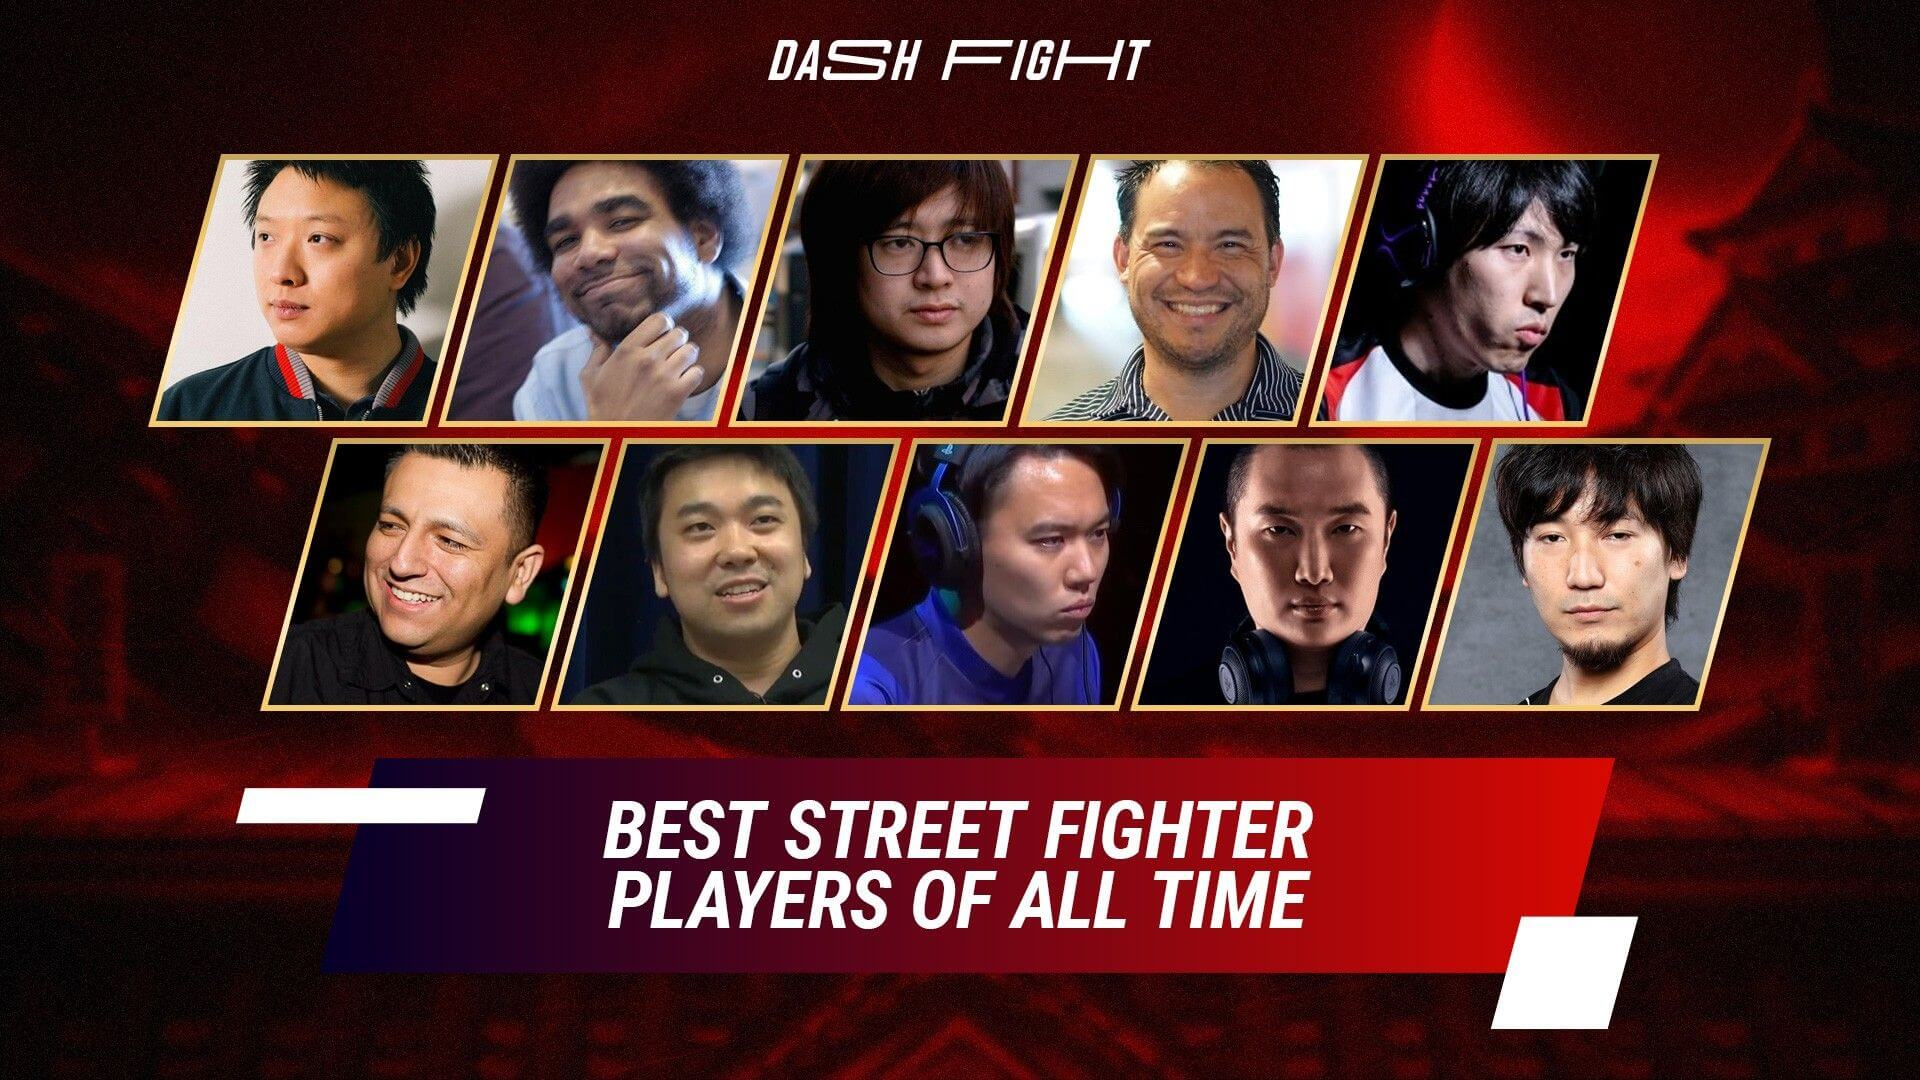 Best Street Fighter Players Of All Time